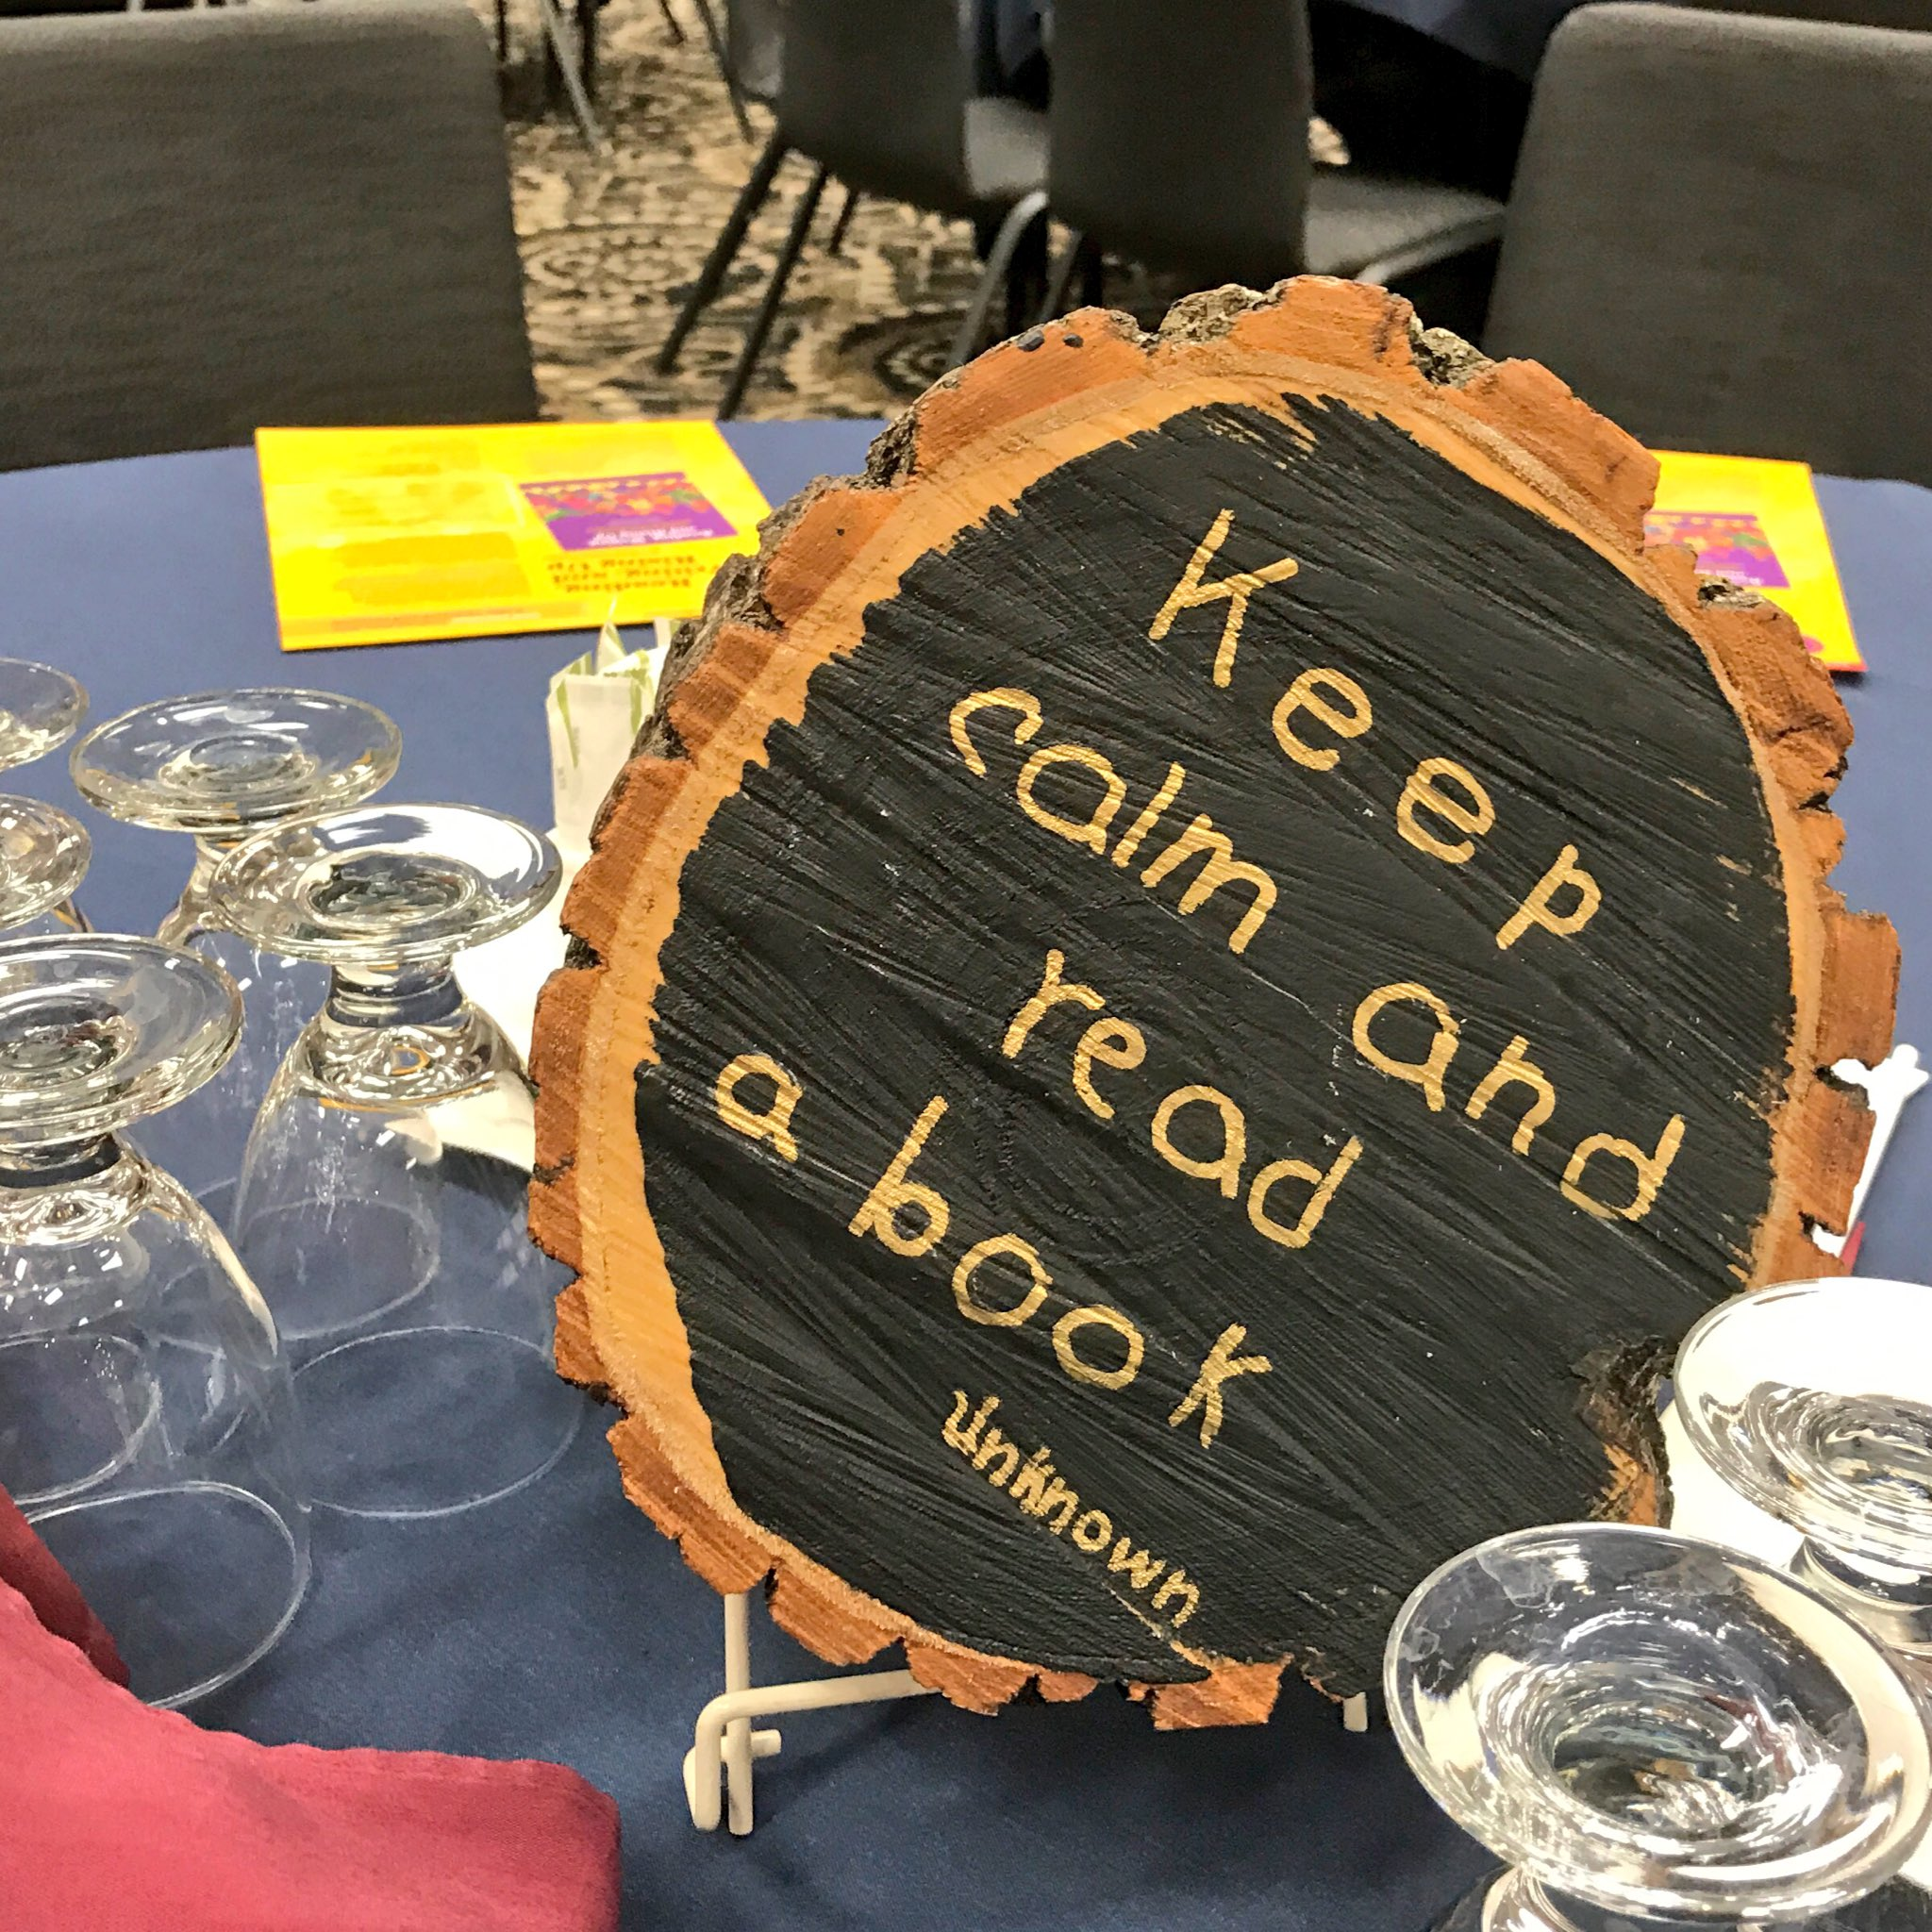 Sage advice in advance of #mrasummit! We are so excited to see everyone tomorrow. https://t.co/fzJnHGv7KZ